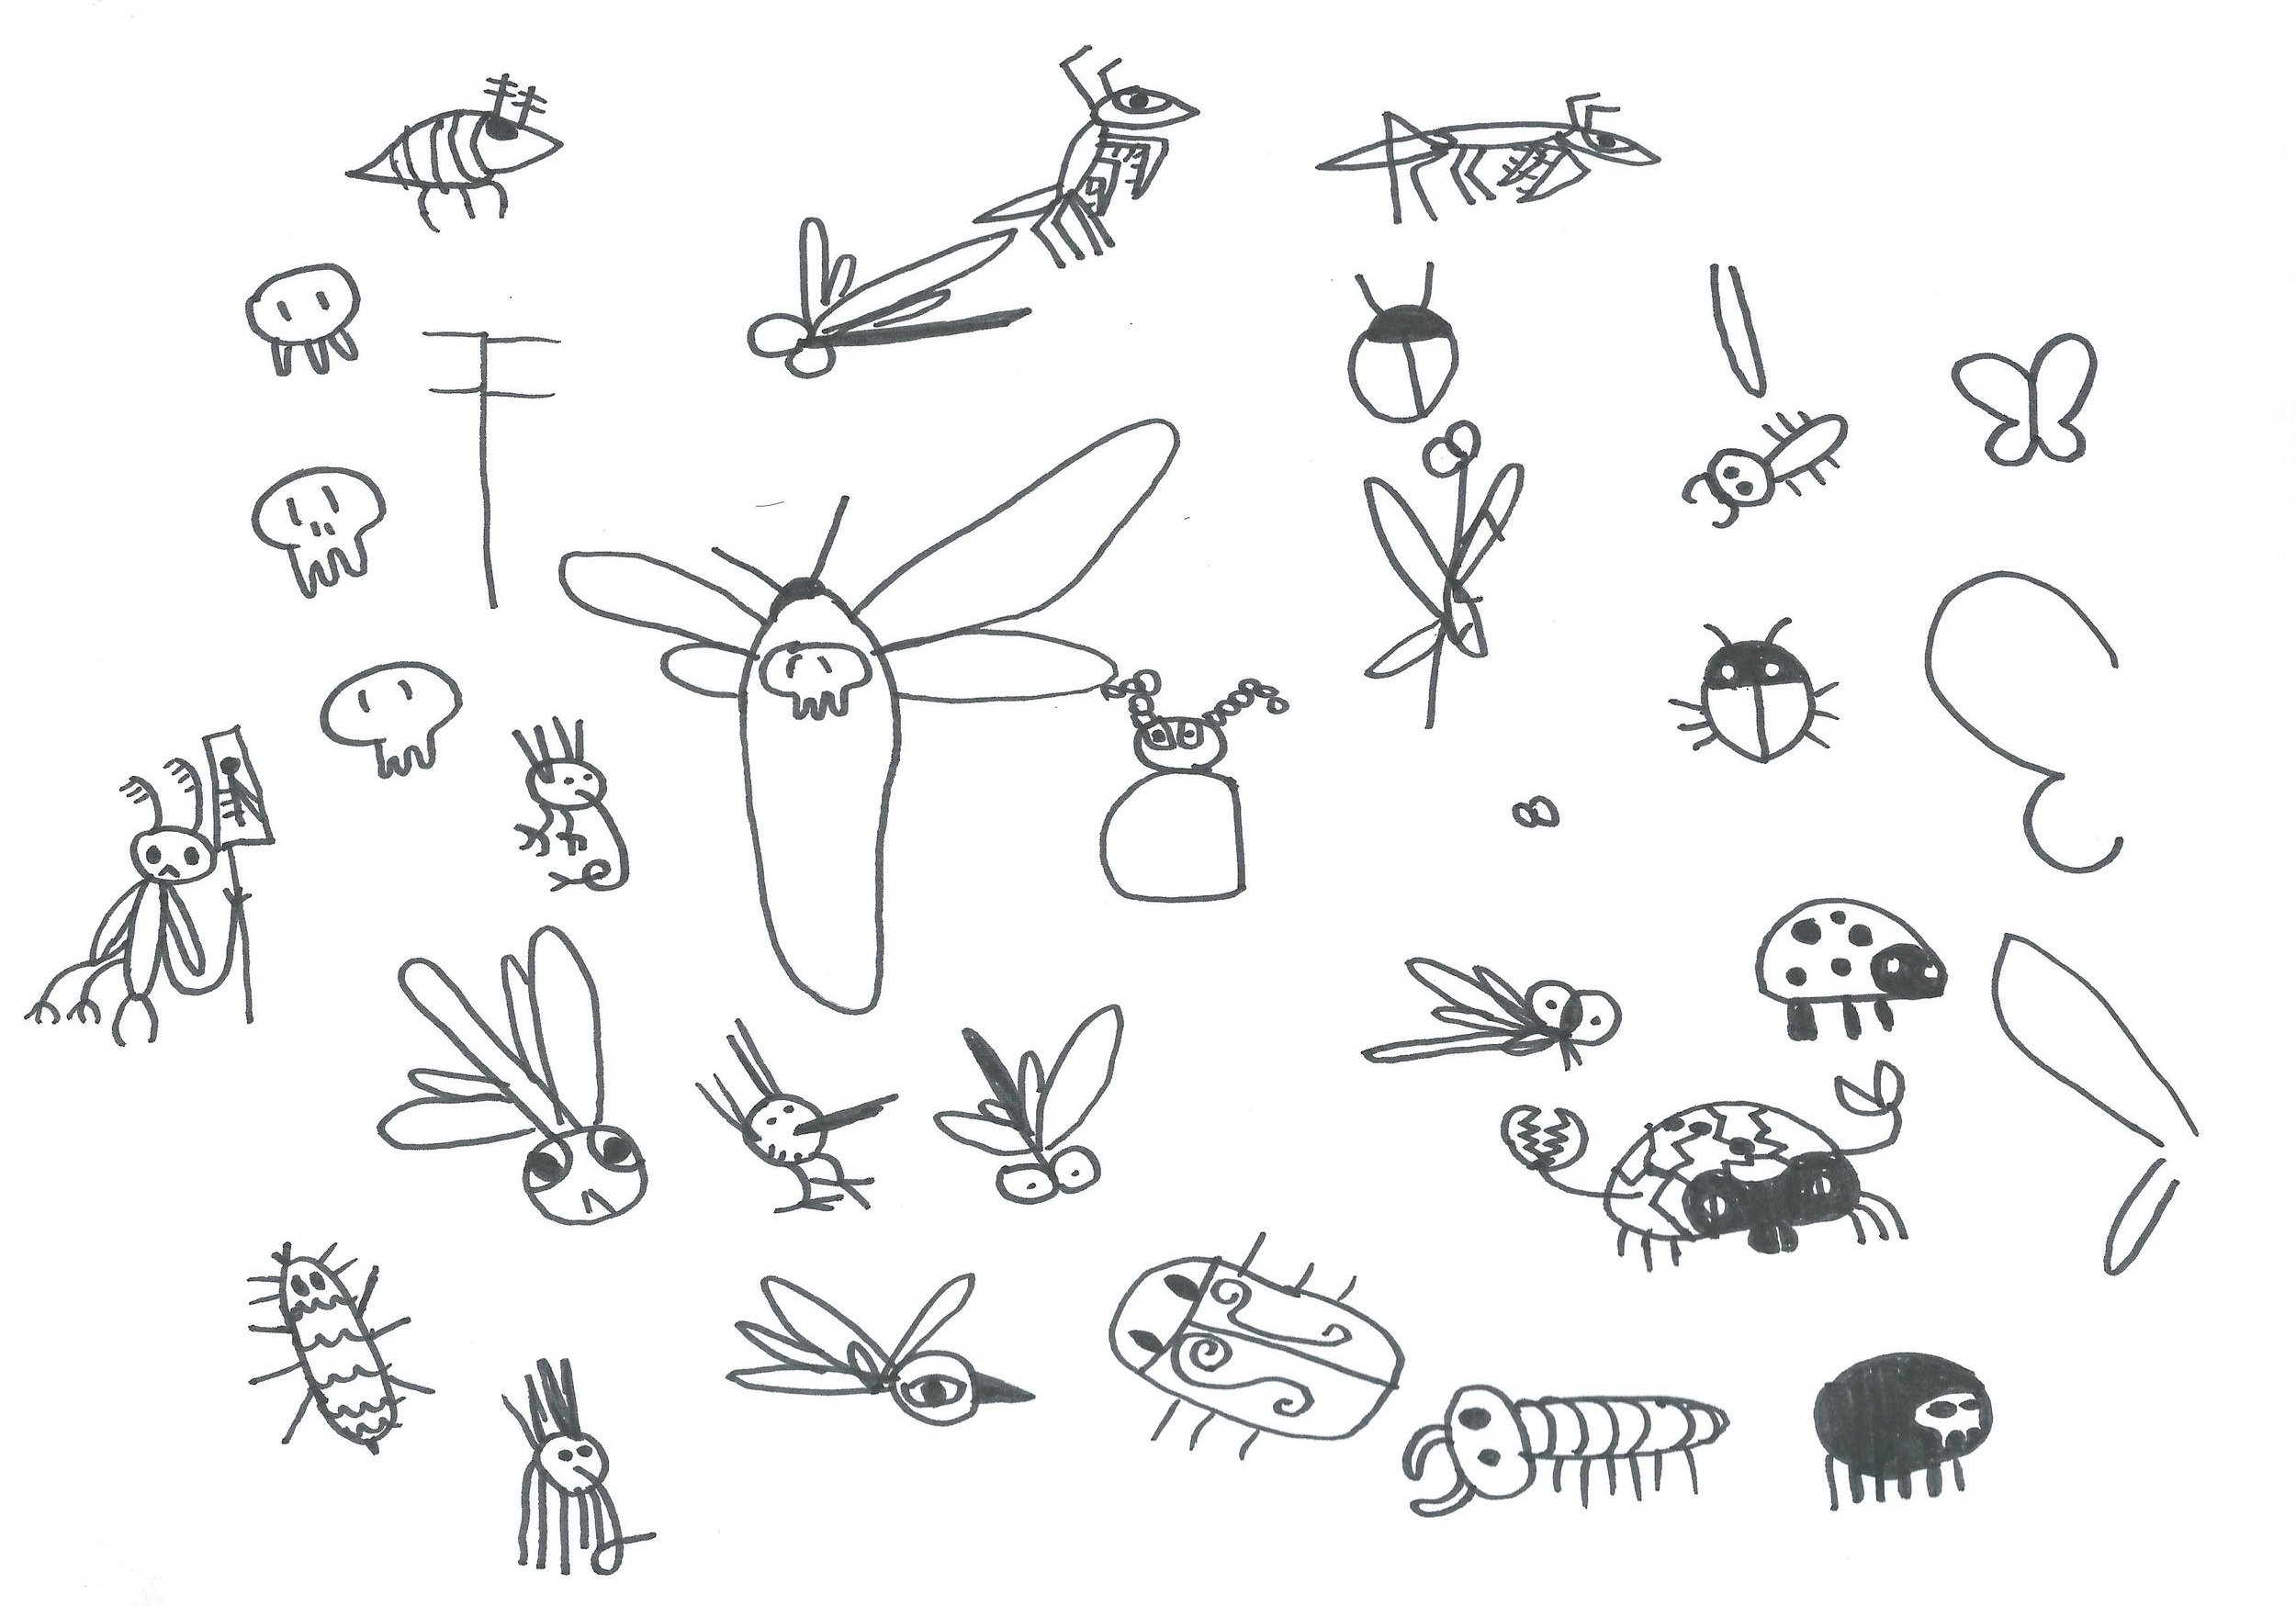 Insects-design.JPG